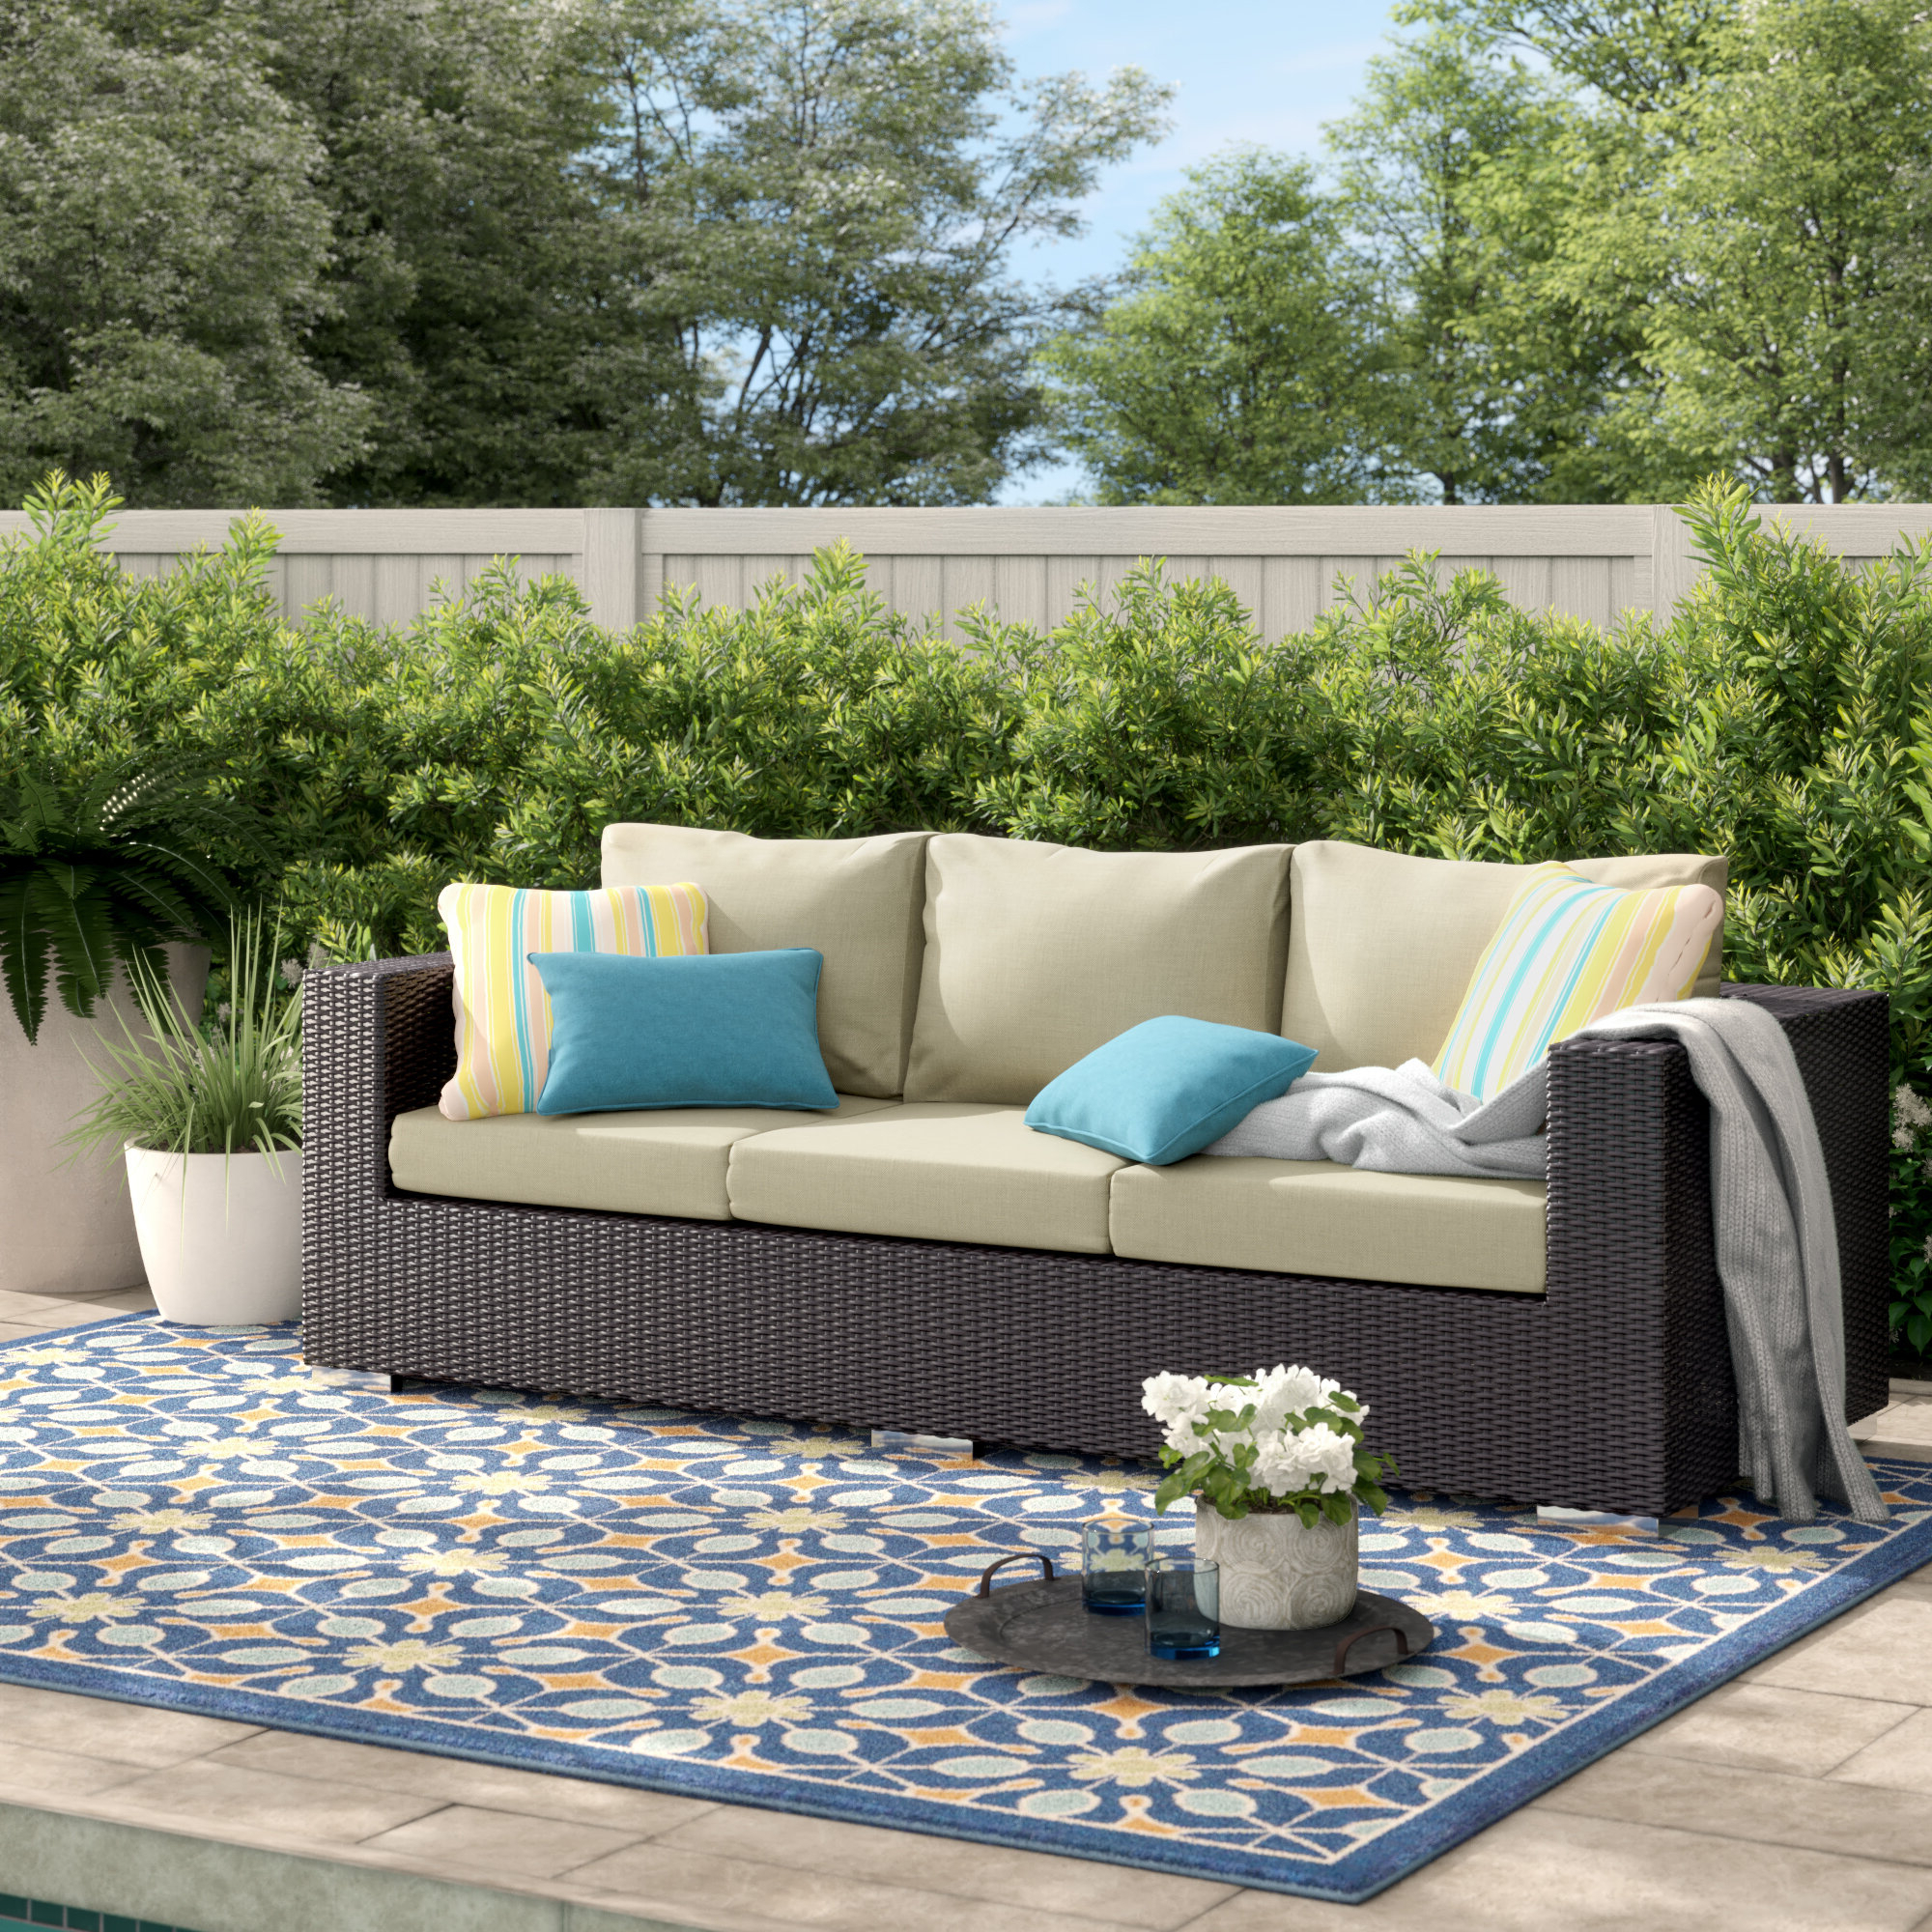 Brentwood Patio Sofa With Cushions Inside Most Recent Wrobel Patio Sectionals With Cushion (View 5 of 20)